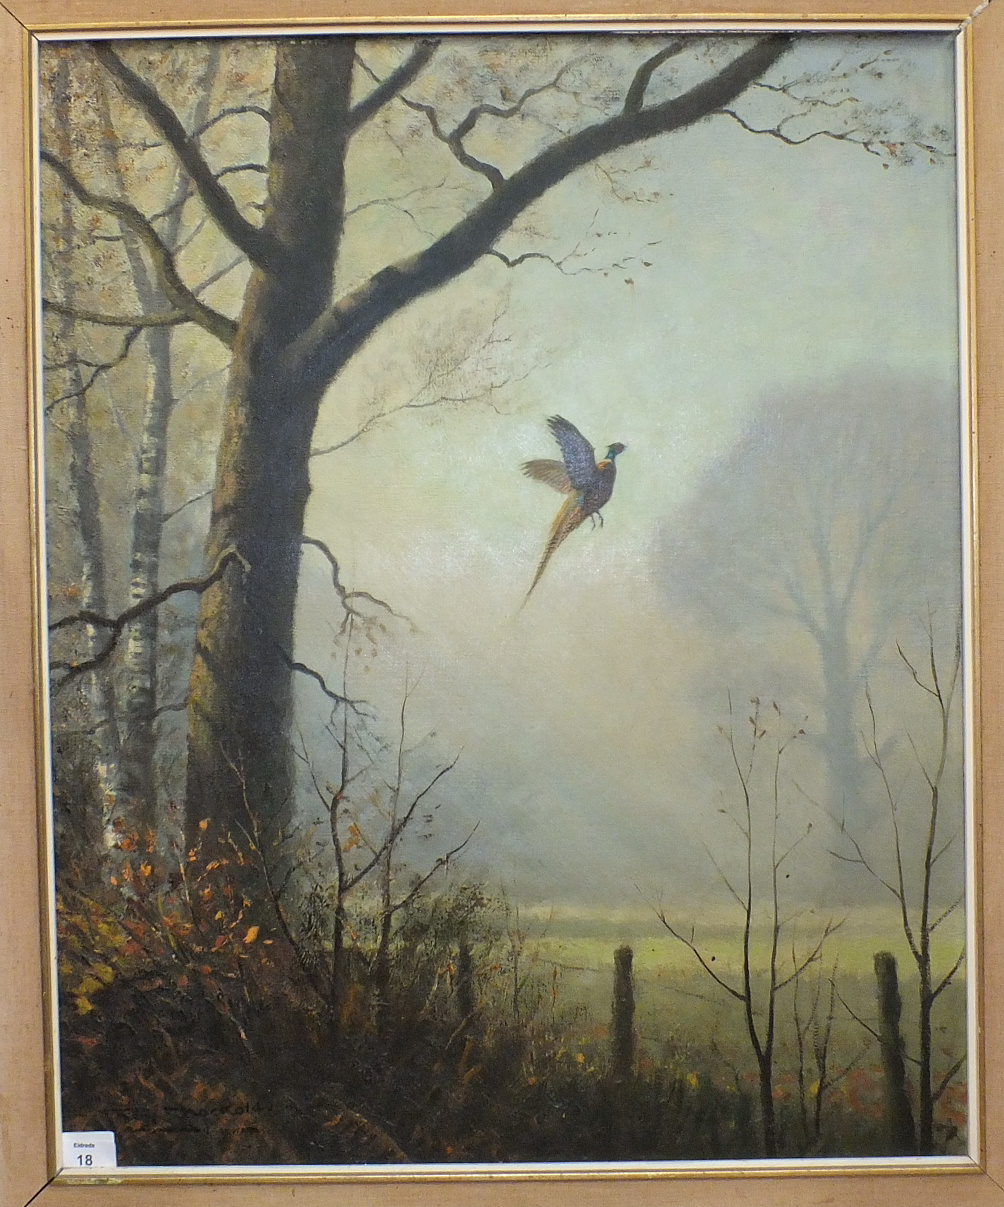 Roy Nockolds PHEASANT RISING IN THE EARLY MORNING MIST Signed oil on canvas, 67 x 54.5cm.